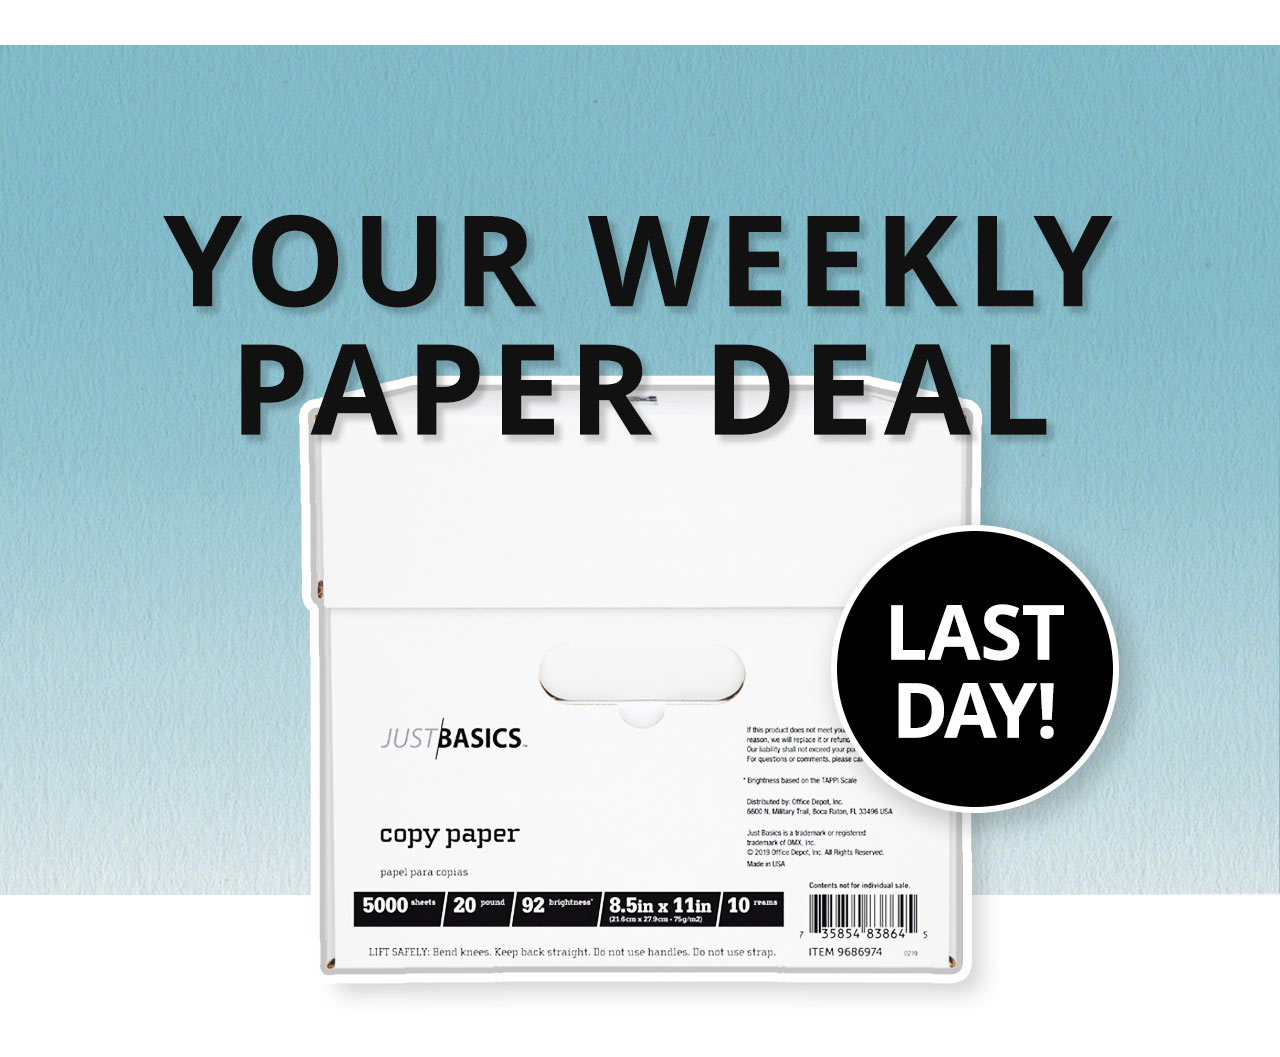 Your weekly paper deal